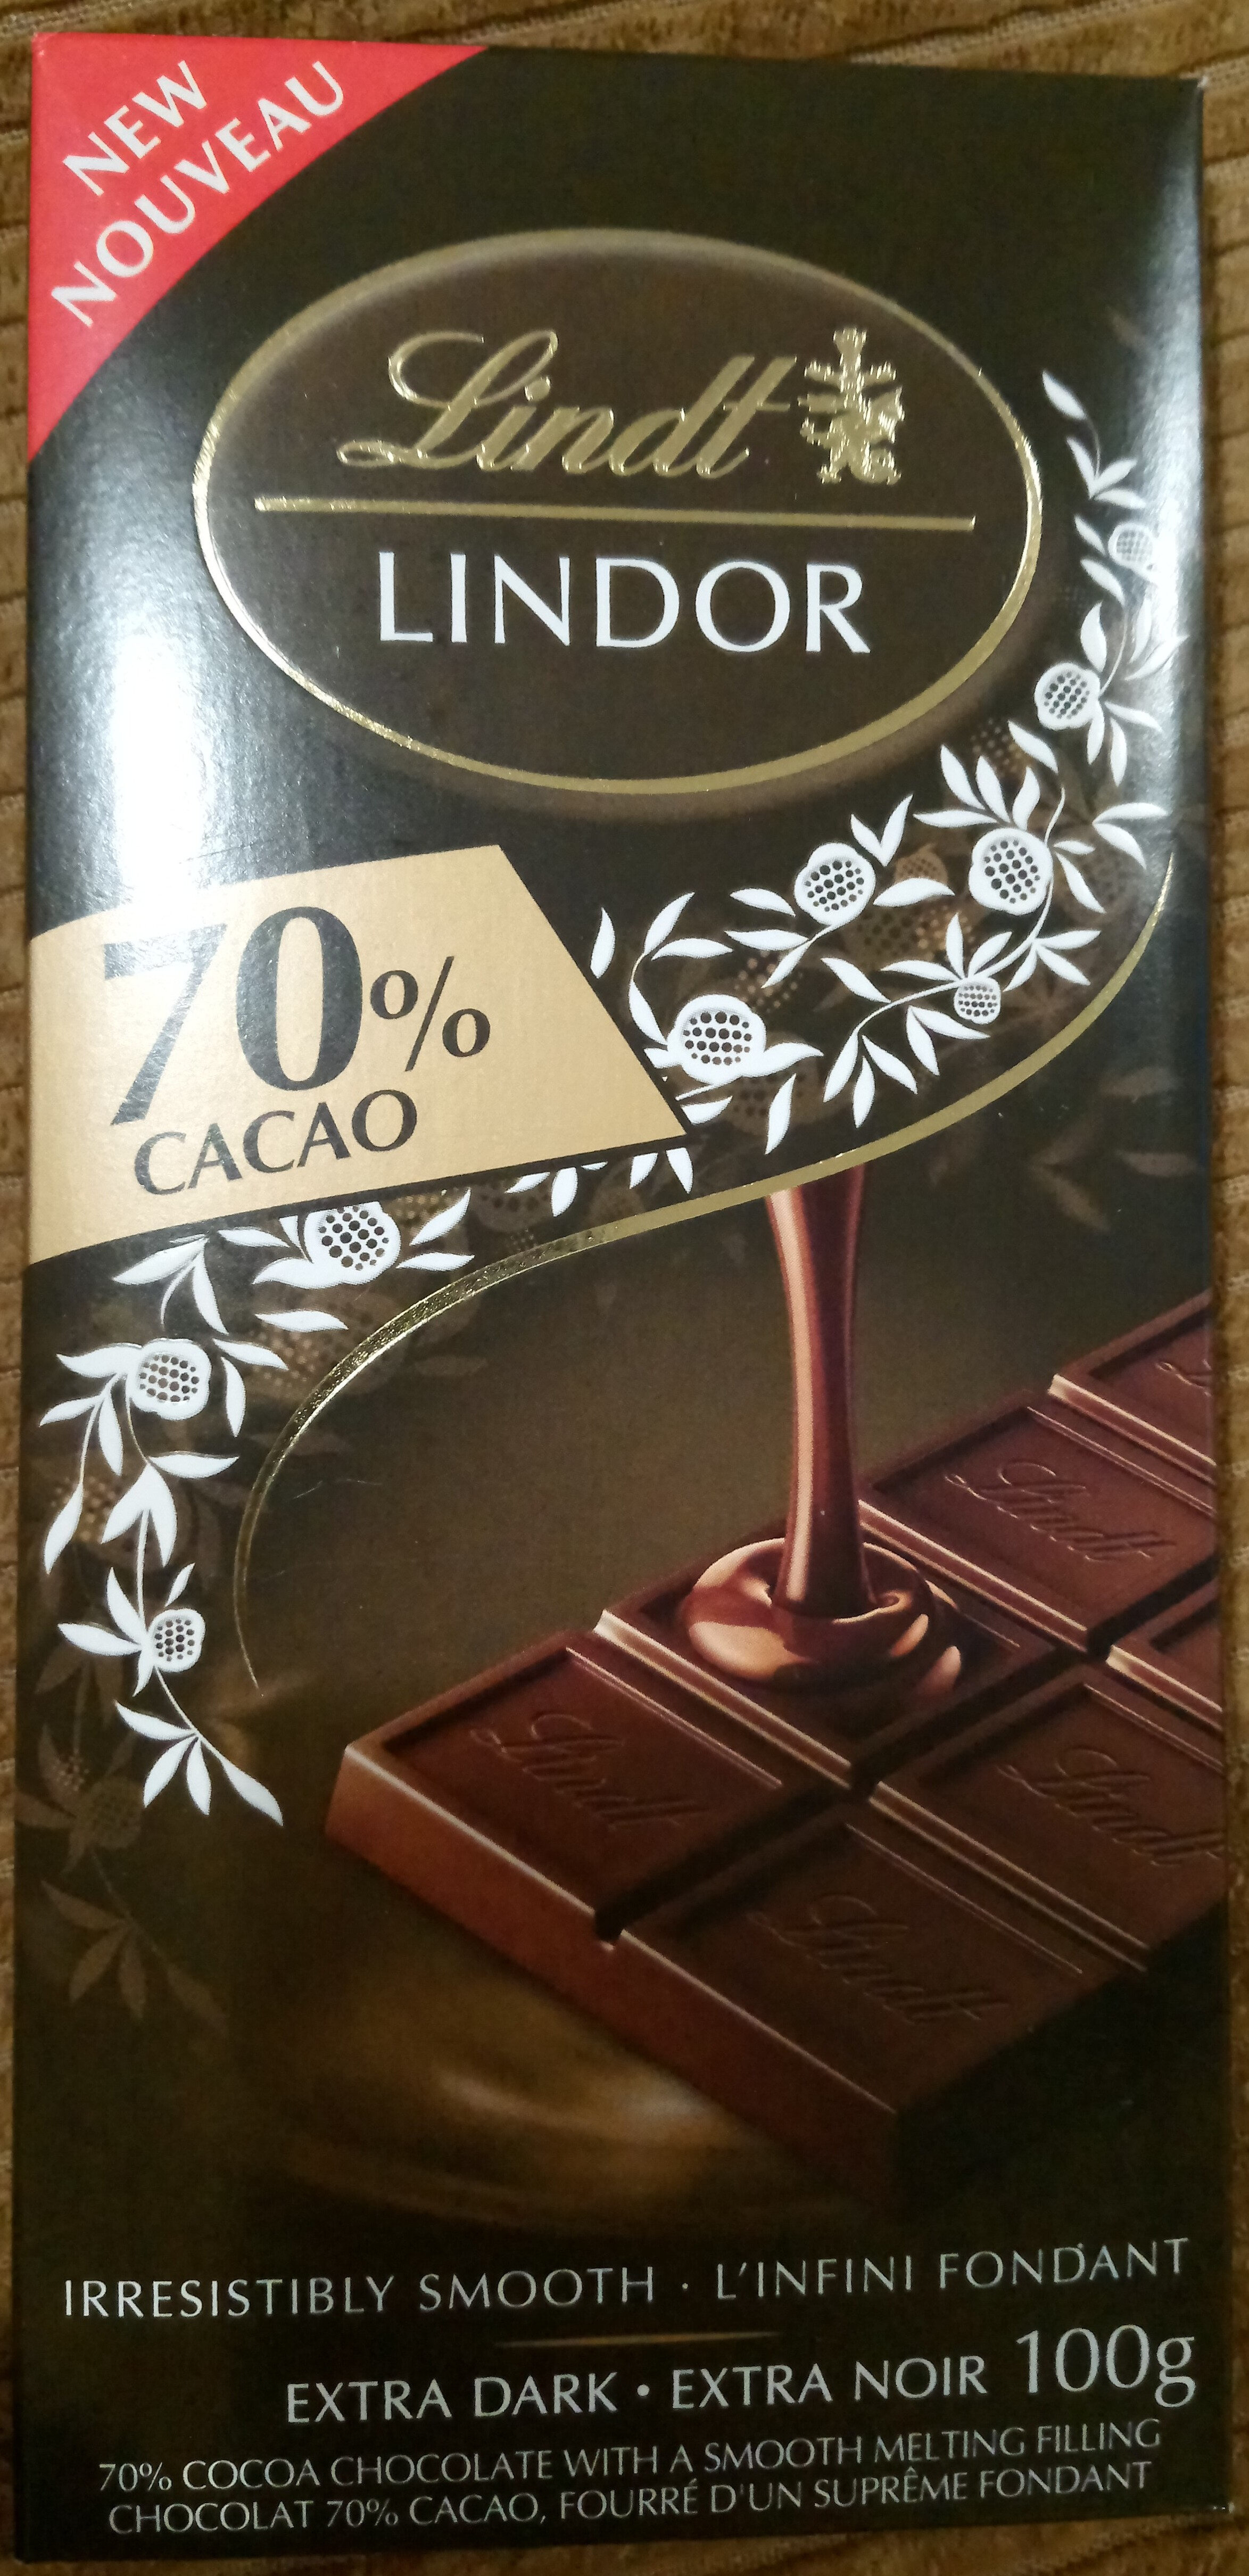 Lindt - Product